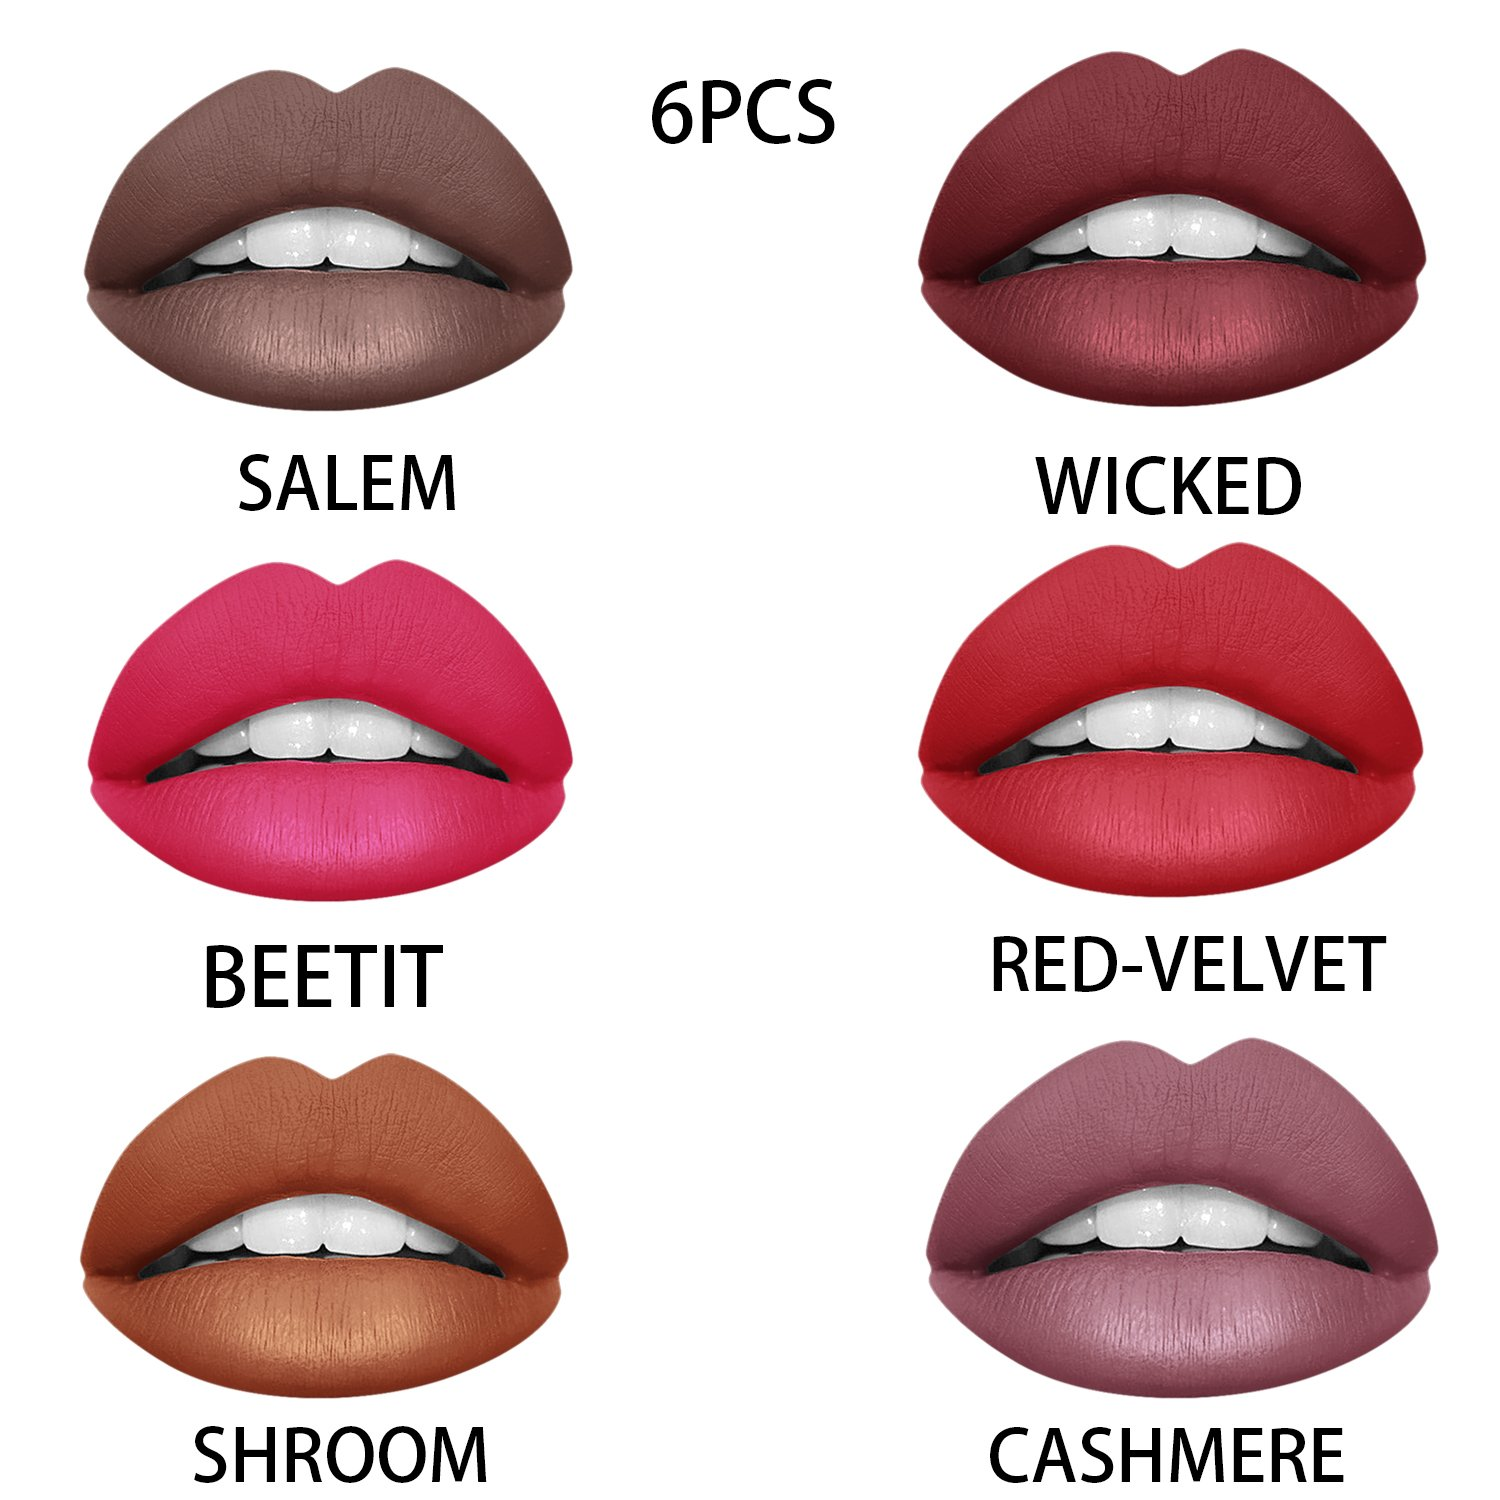 Ownest 6 Colors Waterproof Long Lasting Durable Matte Liquid Lipstick Beauty Lip Gloss, Sexy Moisturizing Lipstick Lip Gloss Fashionable Colors Long Lasting Lipsticks Set by Ownest (Image #2)